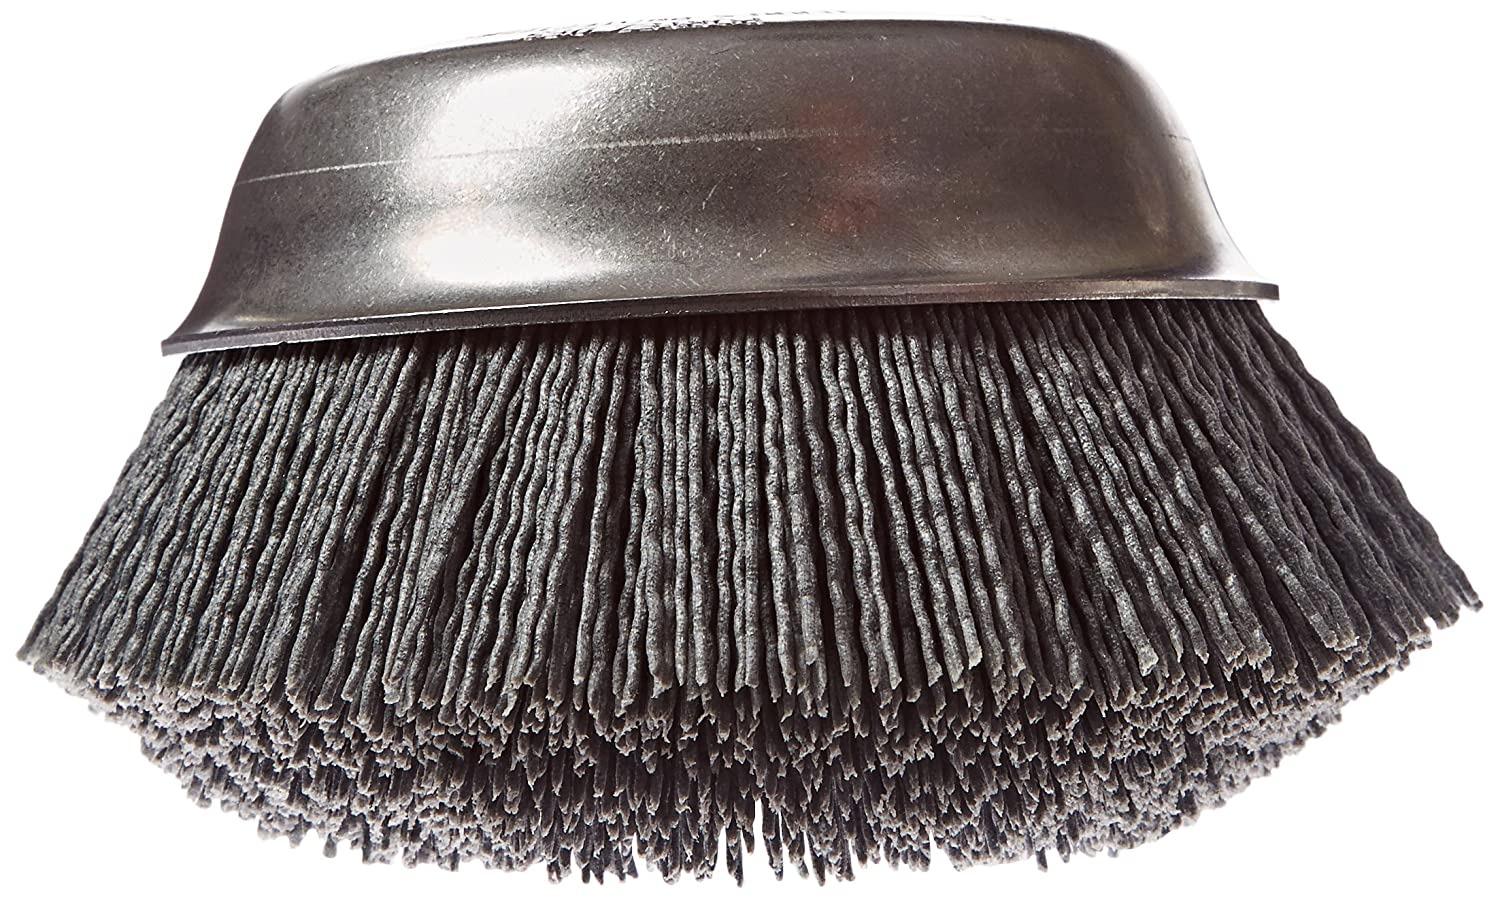 Osborn SP Abrasive Cup Brush Silicon Carbide Maximum - Vinyl cup brush